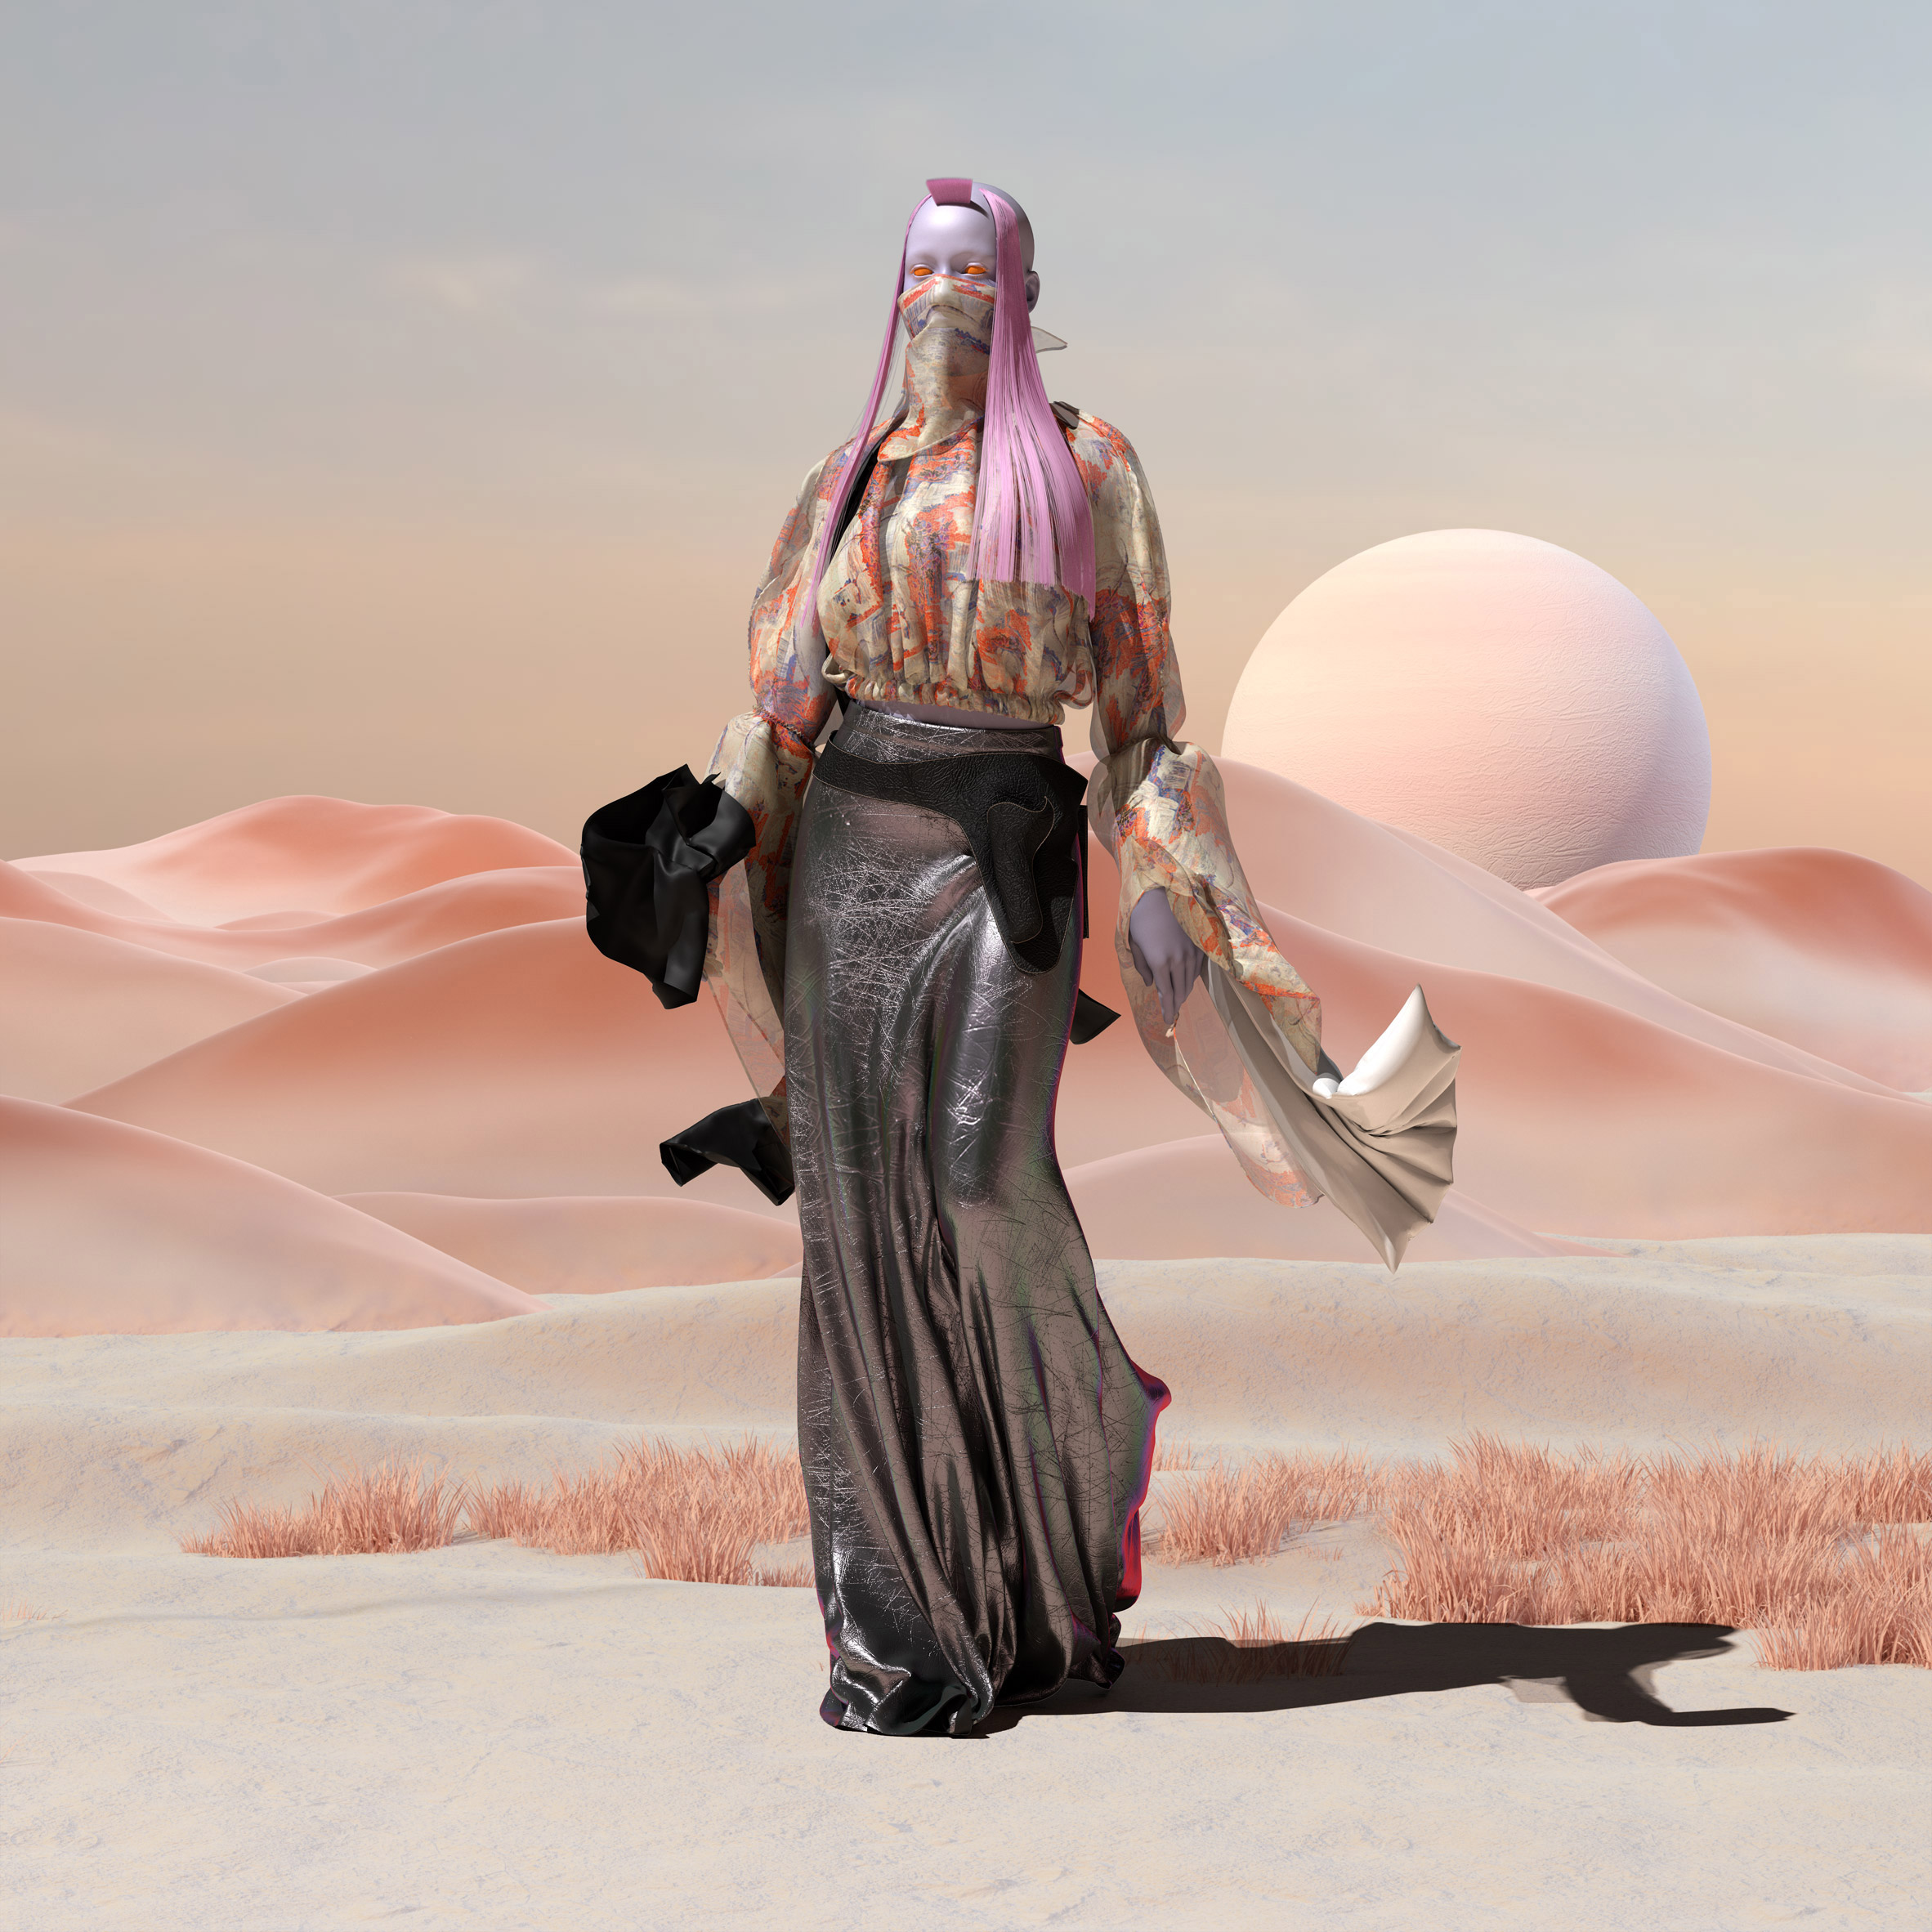 Virtual dress by The Fabricant